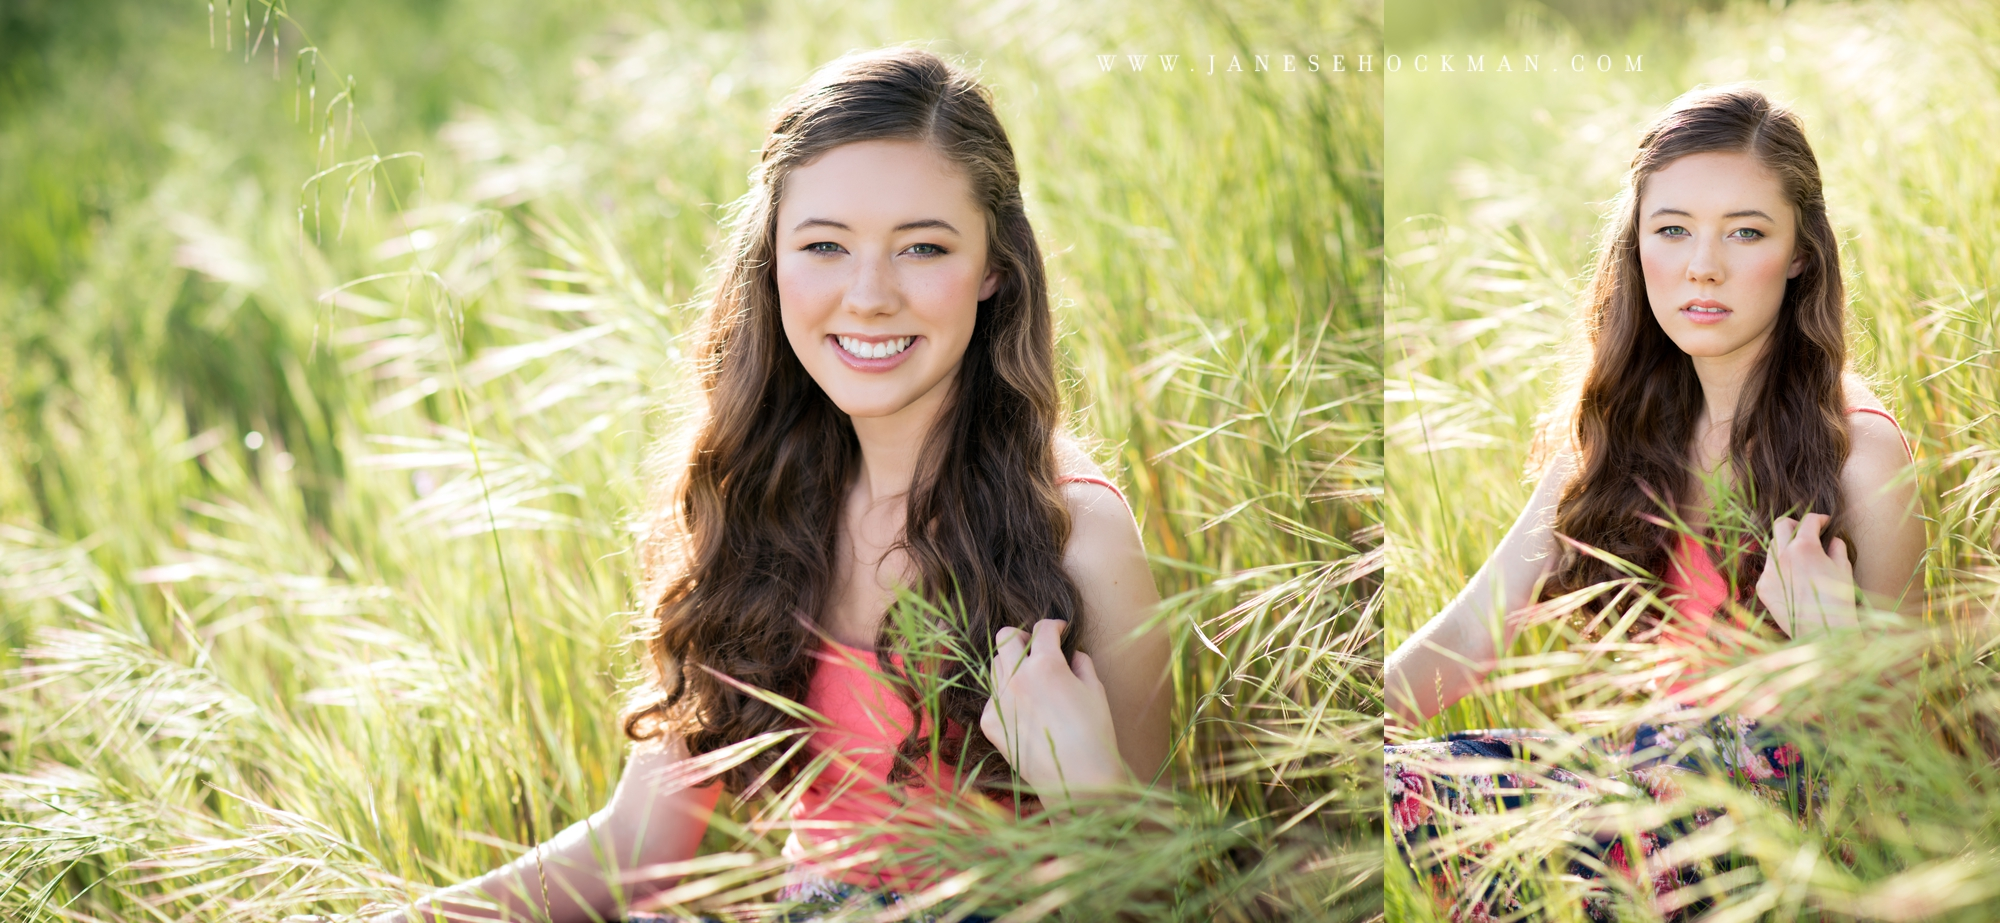 Emily Paso Robles High school senior portraits  2.jpg